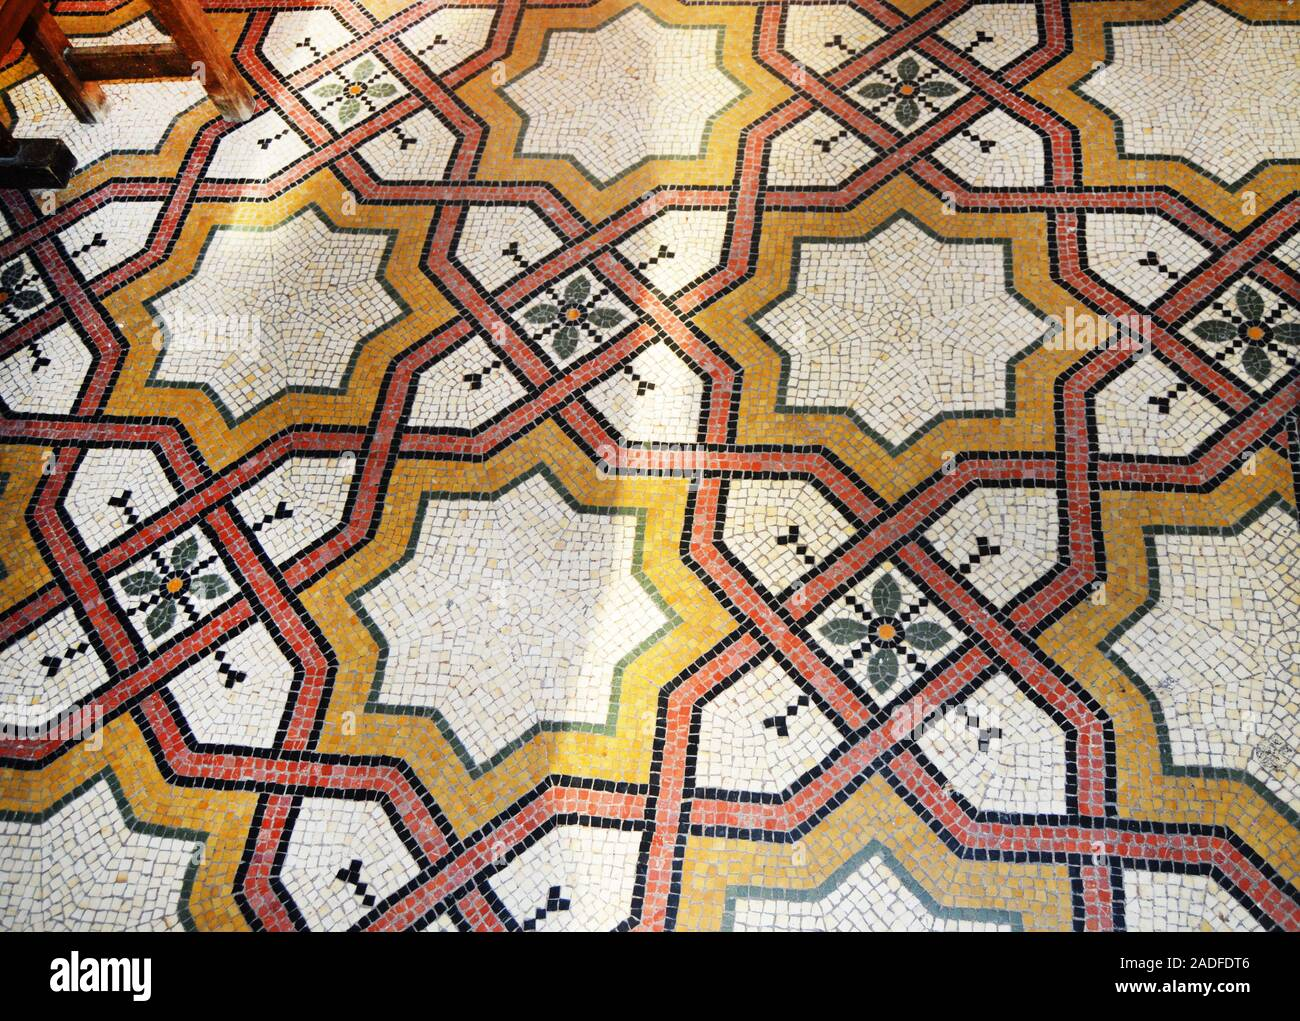 Patterned Marble Floor High Resolution Stock Photography And Images Alamy